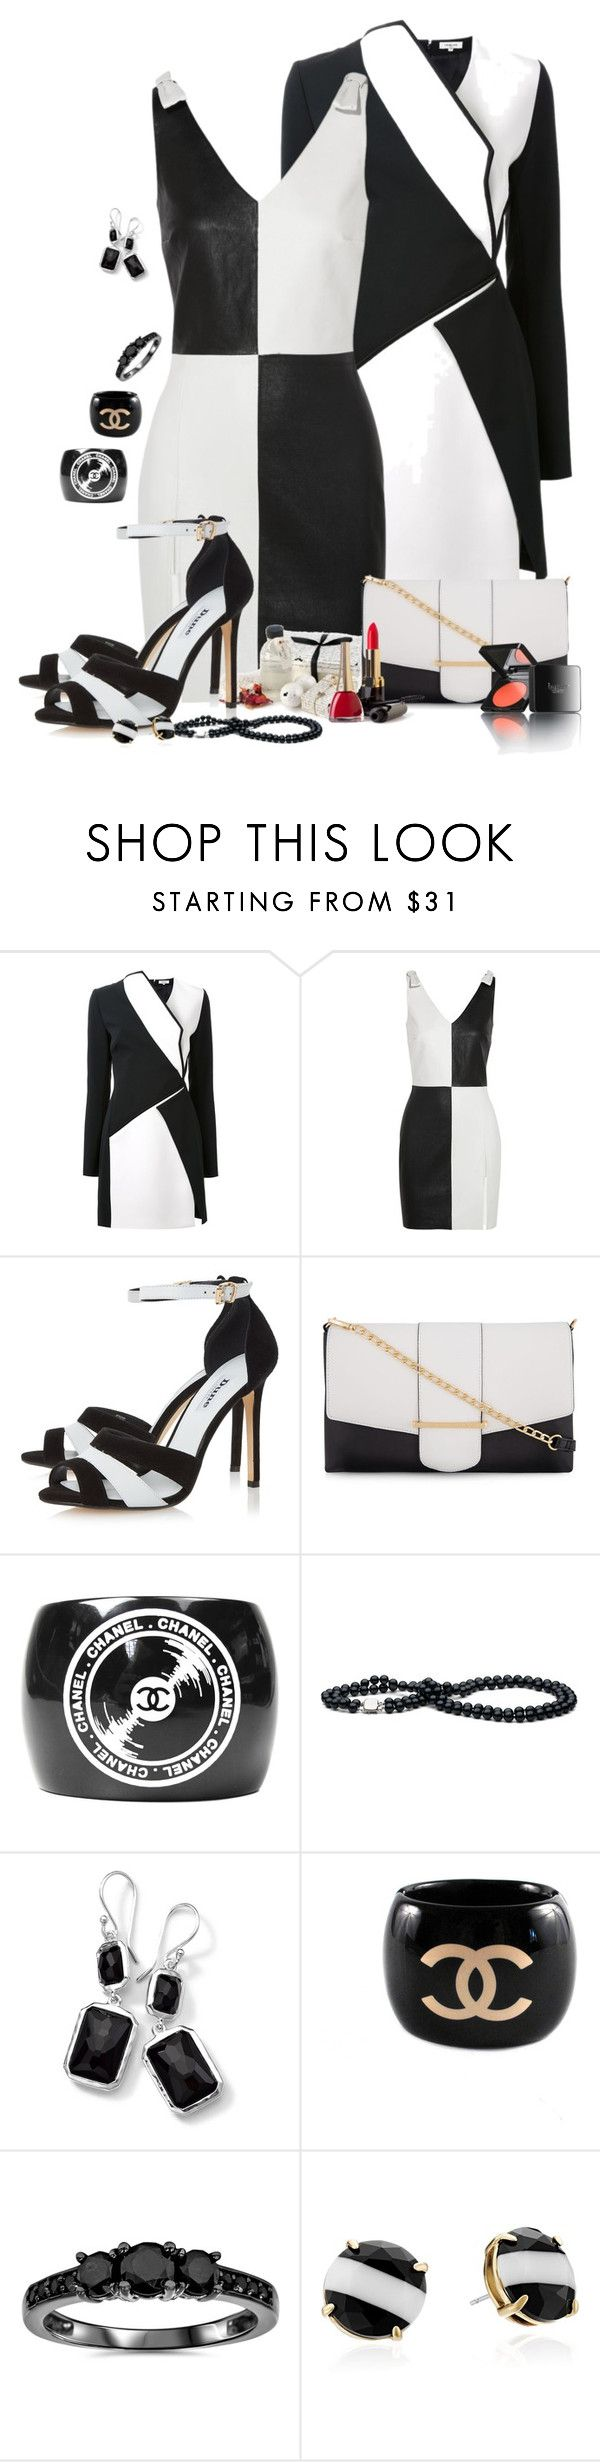 """Untitled #1516"" by patsypatsy ❤ liked on Polyvore featuring Thierry Mugler, Yves Saint Laurent, Dune, Kardashian Kollection, Chanel, Ippolita, Bliss Diamond, Kate Spade and Henri Bendel"